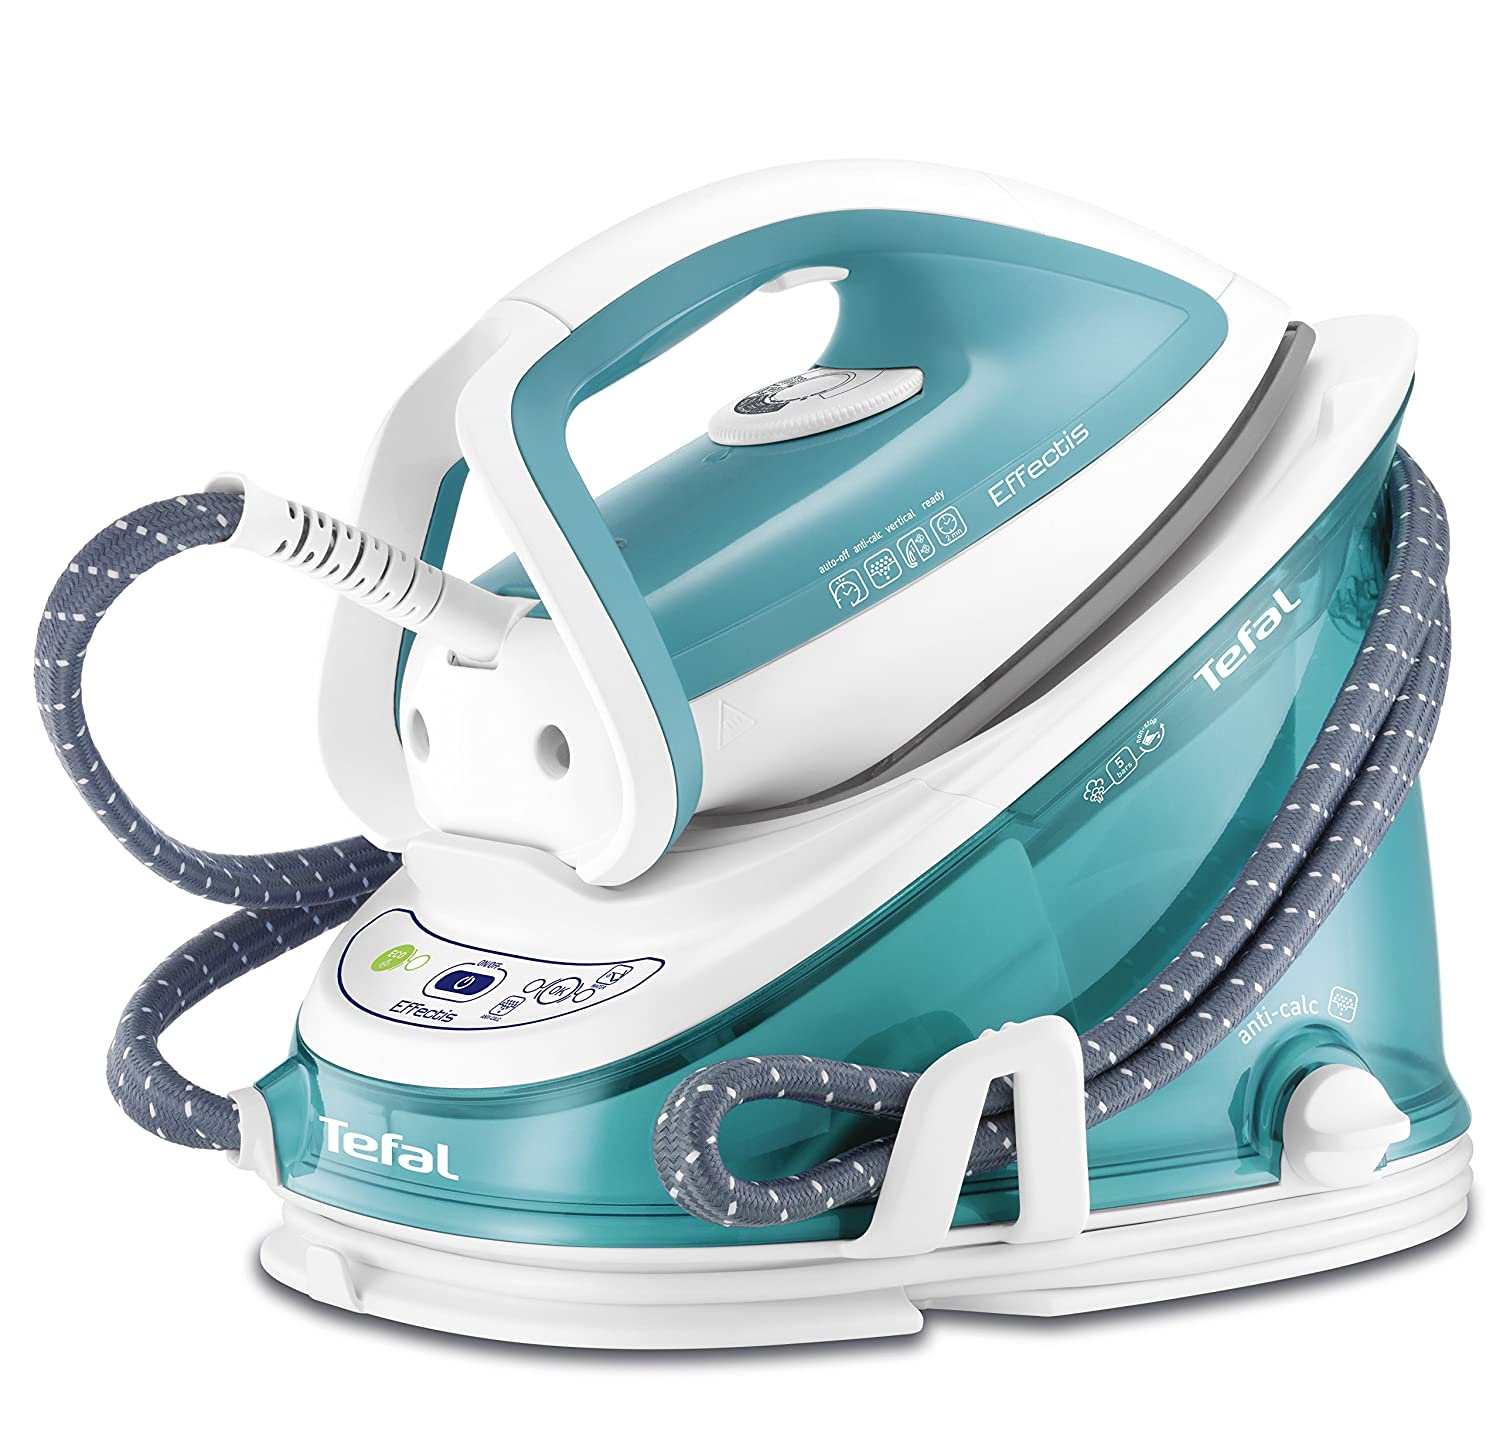 Best Steam Irons 2020.10 Best Tefal Autoclean Steam Generator Irons 2018 2020 On